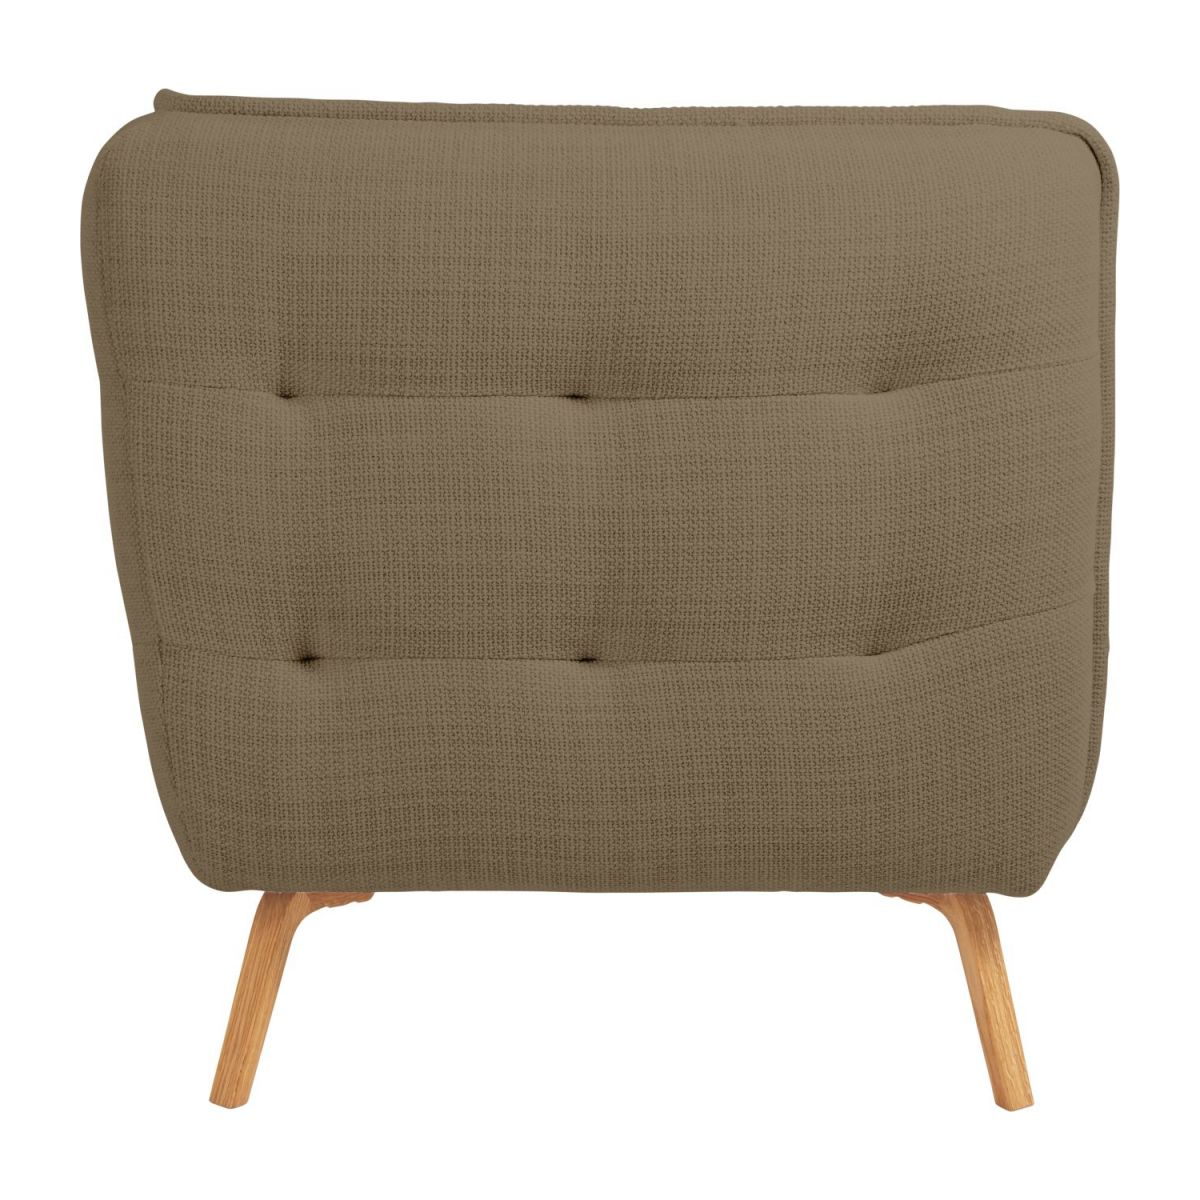 3 seater sofa in Fasoli fabric, jatoba brown and oak legs n°4